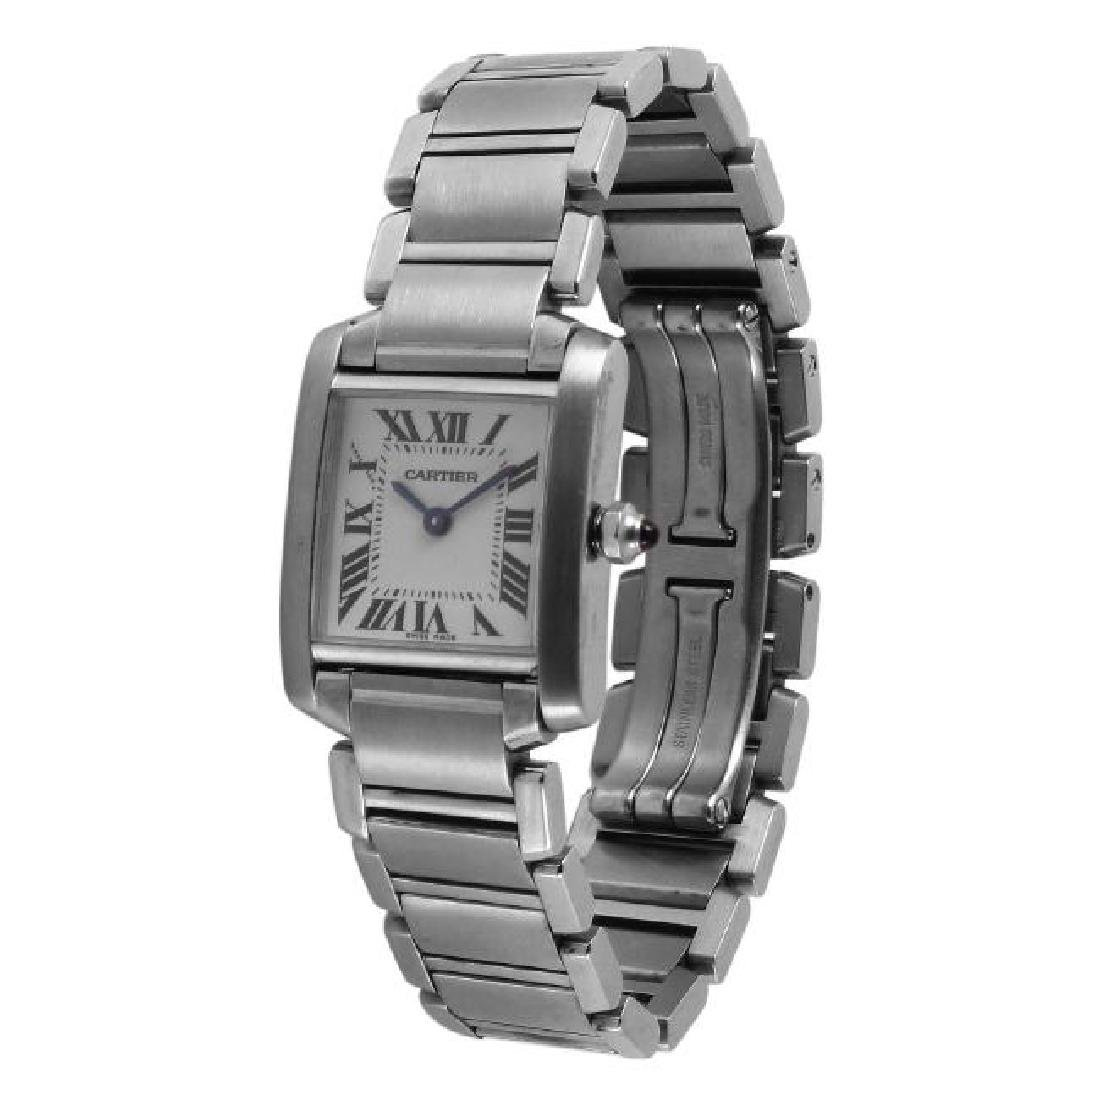 Cartier Tank Francaise SS Ladies Watch - 2